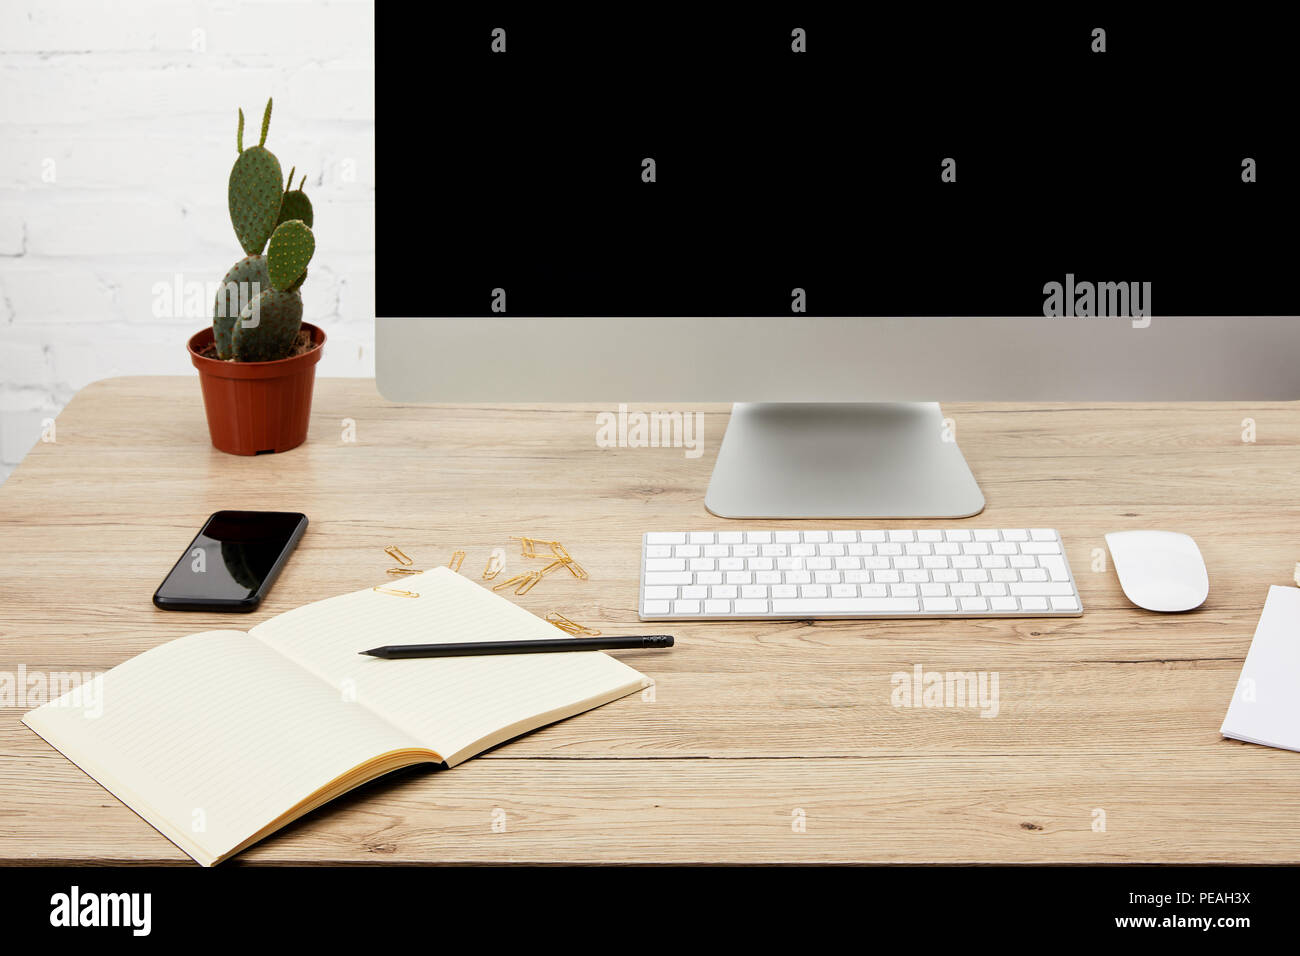 close up view of designer workspace with smartphone, notebook, computer screen and keyboard on wooden surface Stock Photo